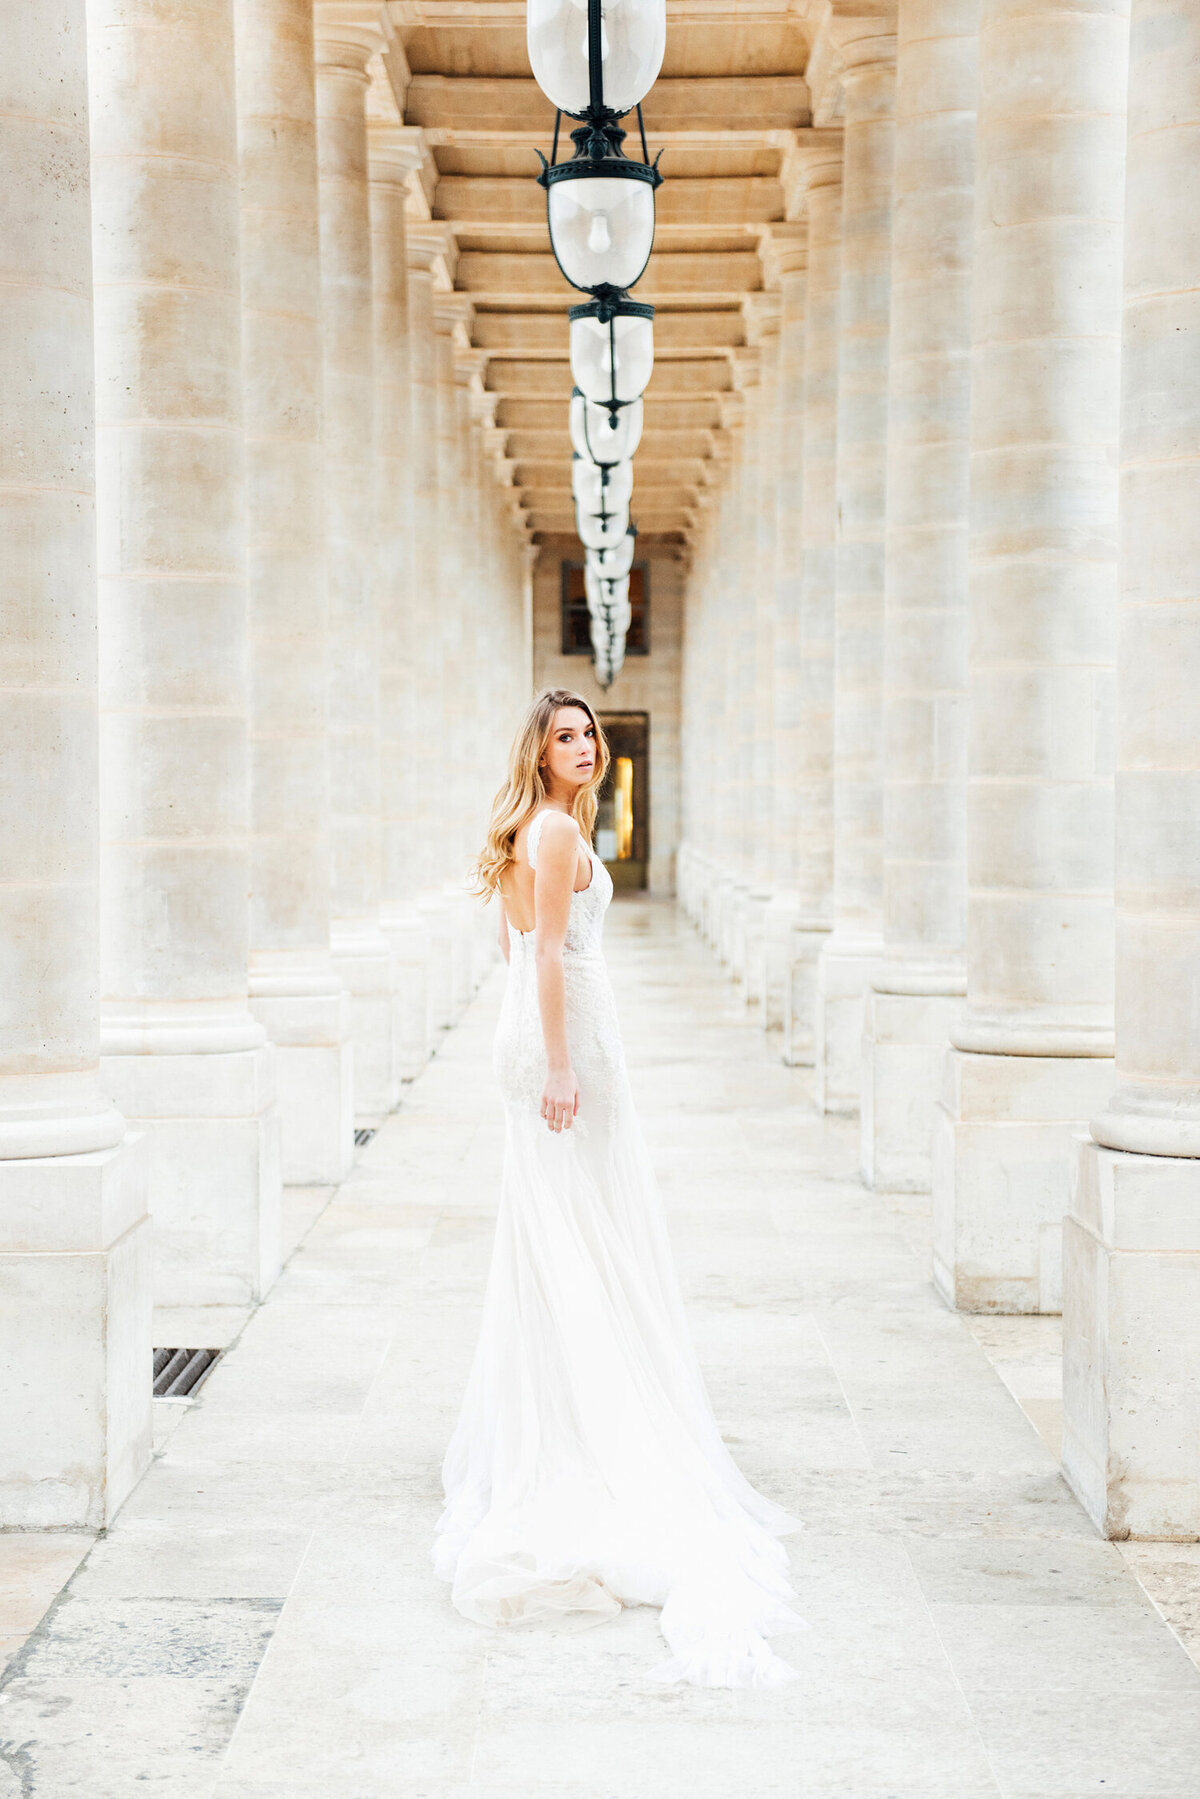 Katie Mitchell, Monique Lhuillier Bridal Paris France Wedding Trine Juel Hair and makeup 22